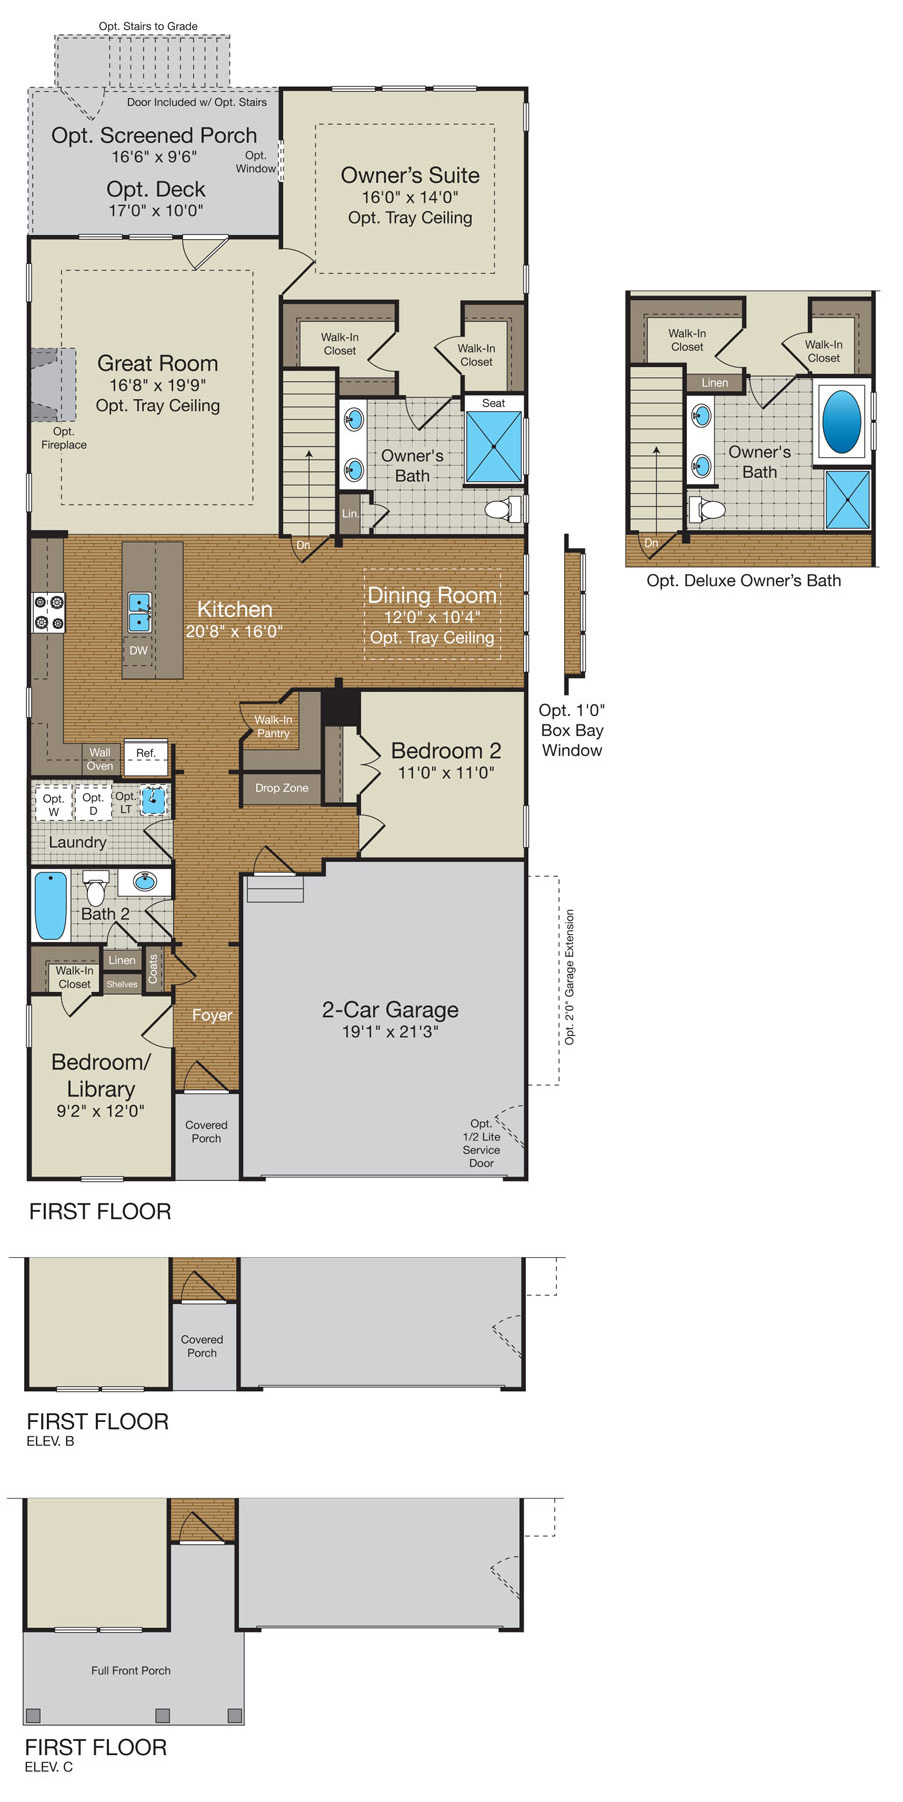 CG_Grace Floor Plan_First Floor